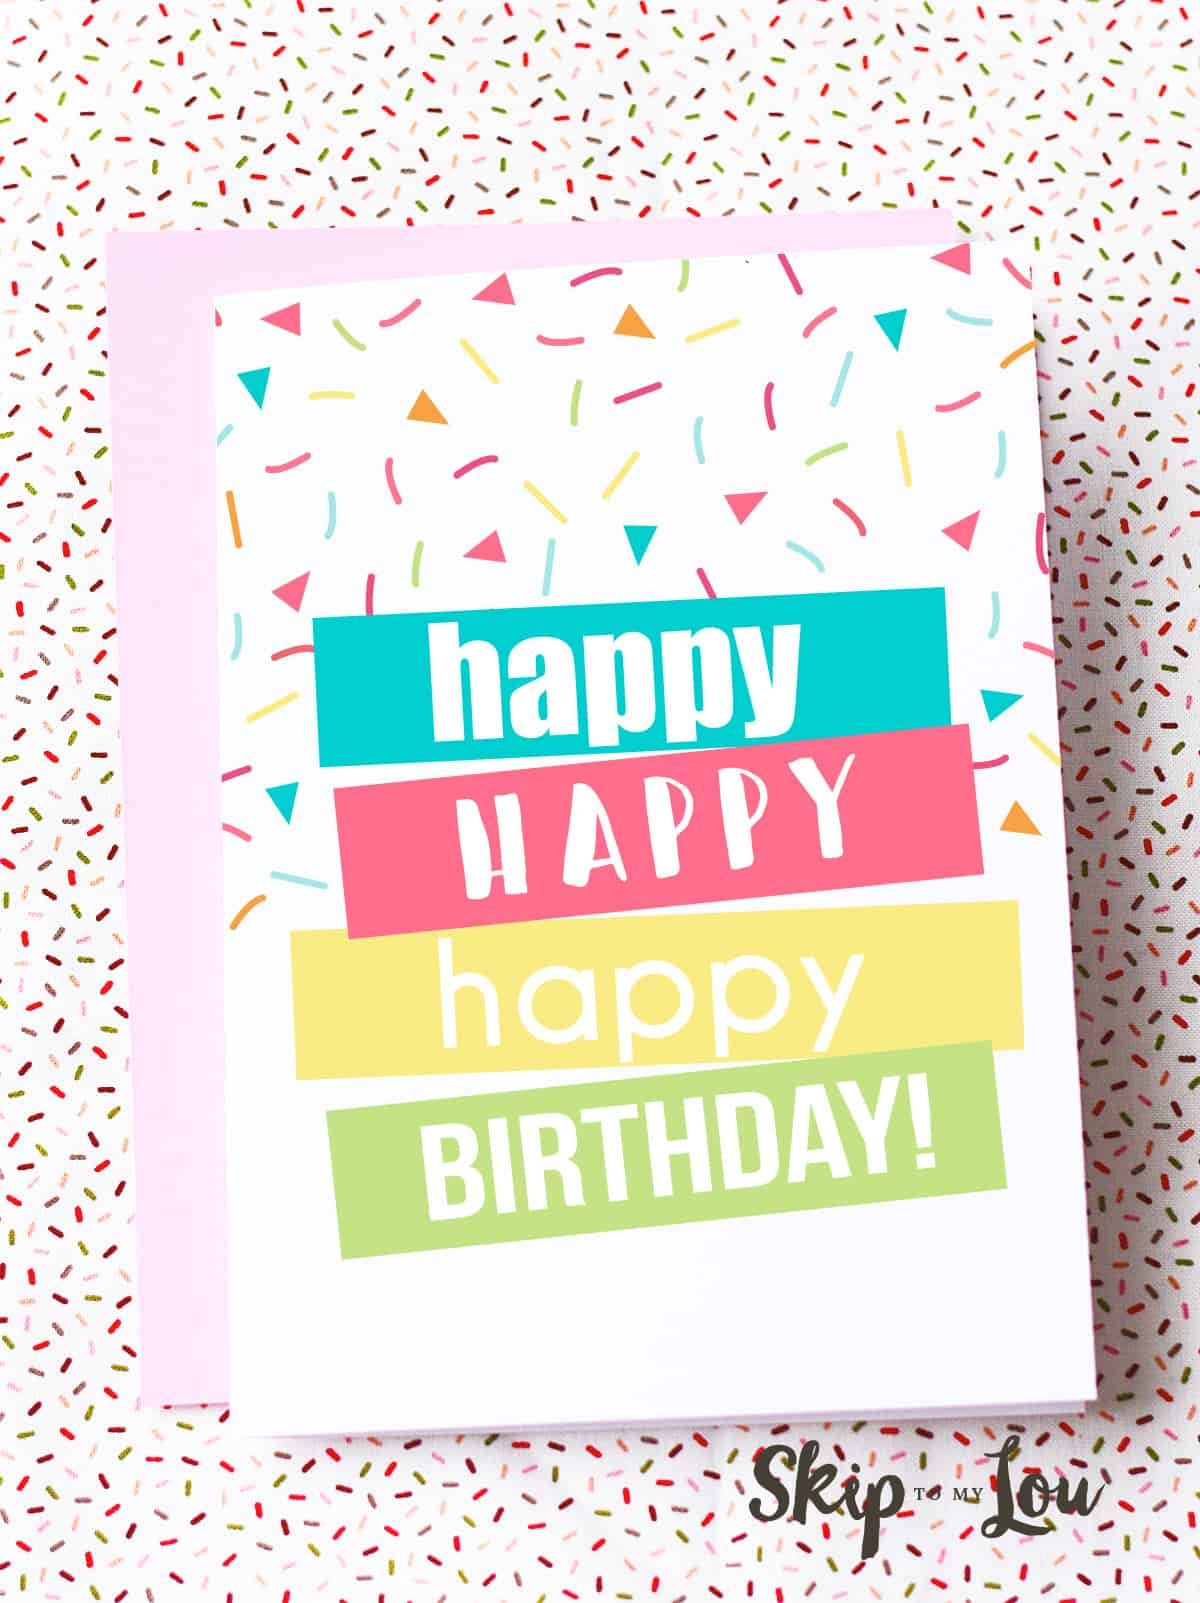 picture regarding Free Printable Birthday Cards for Boys named Totally free Printable Birthday Playing cards Miss Towards My Lou